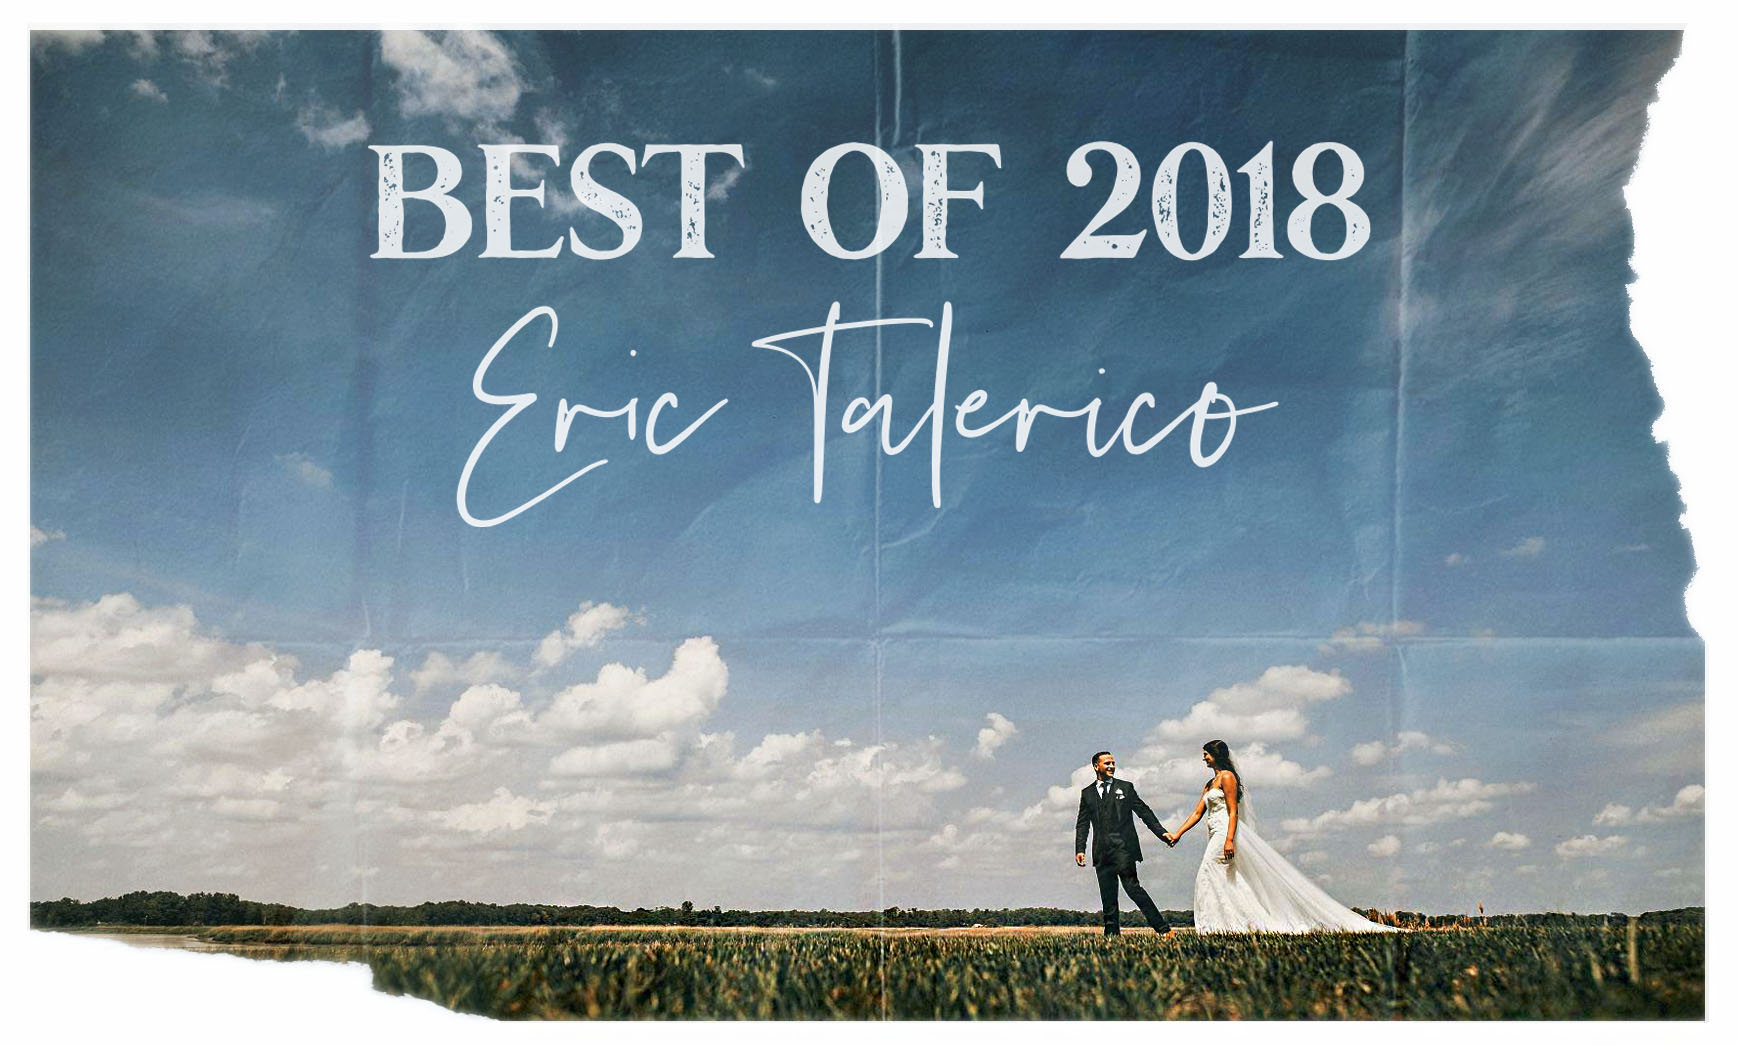 Eric-Best-of-2018-hero.jpg